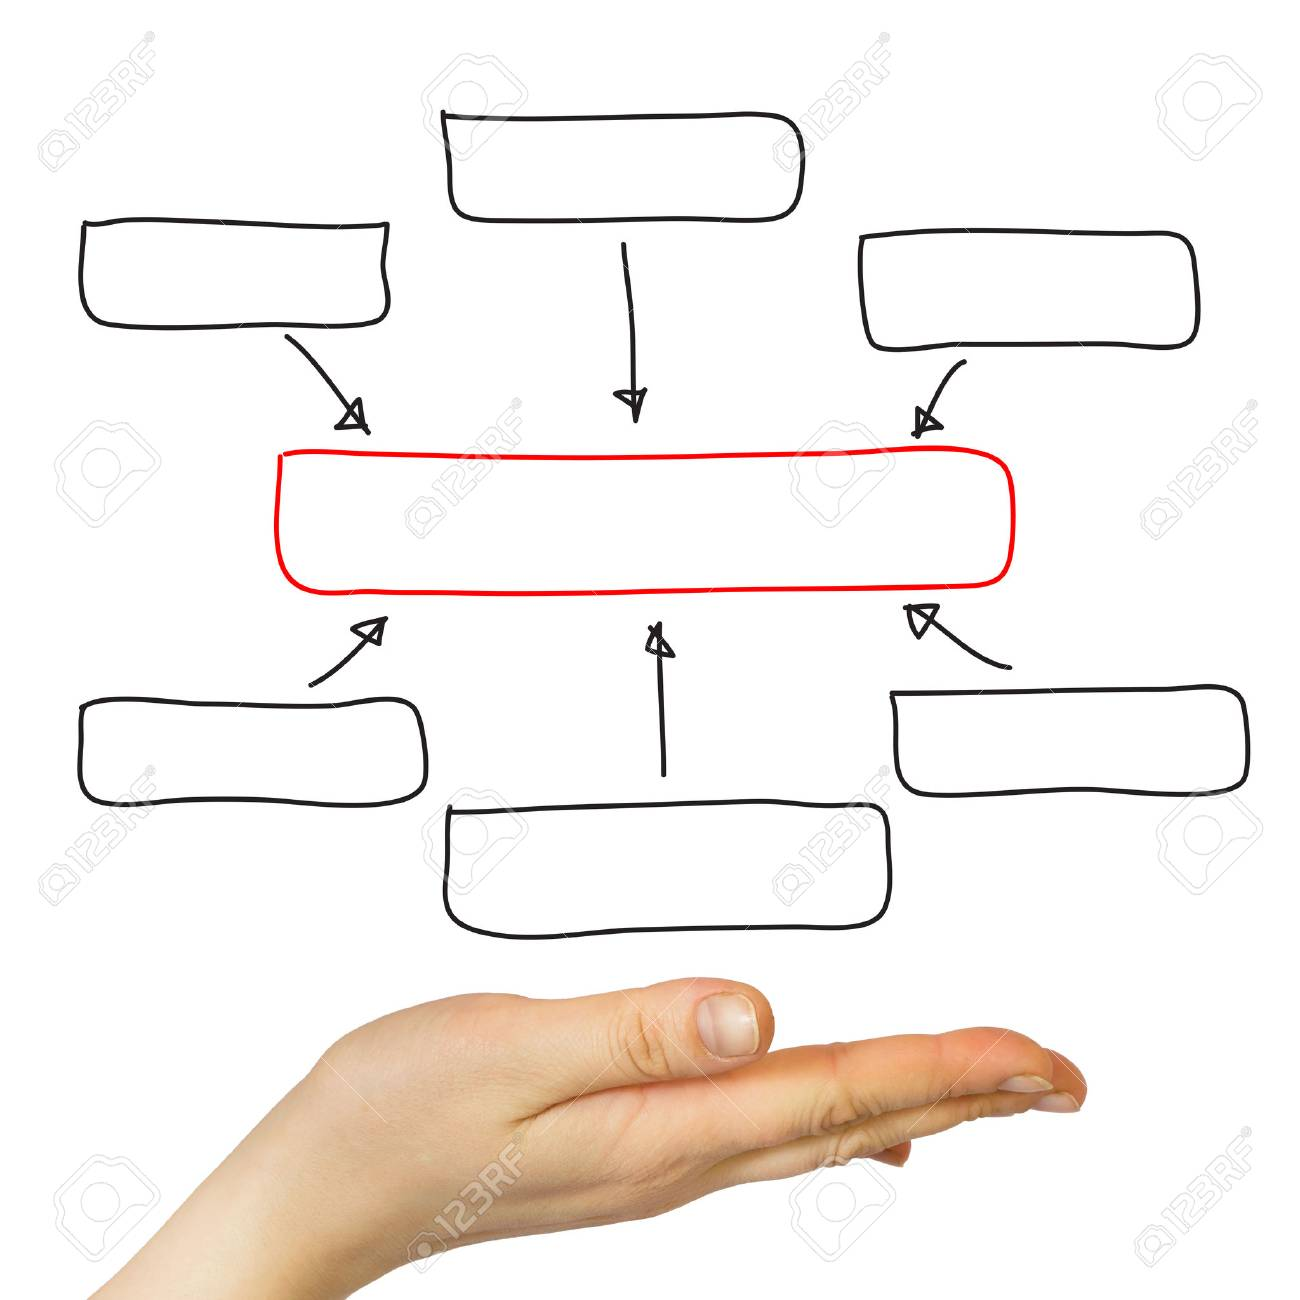 Hand Drawing A Blockdiagram Royalty Free Stock Photos Image Wire Bq24105 Switch Mode Lead Acid Battery Charger On The Palm Of Is Block Diagram Business Plan Rh 123rf